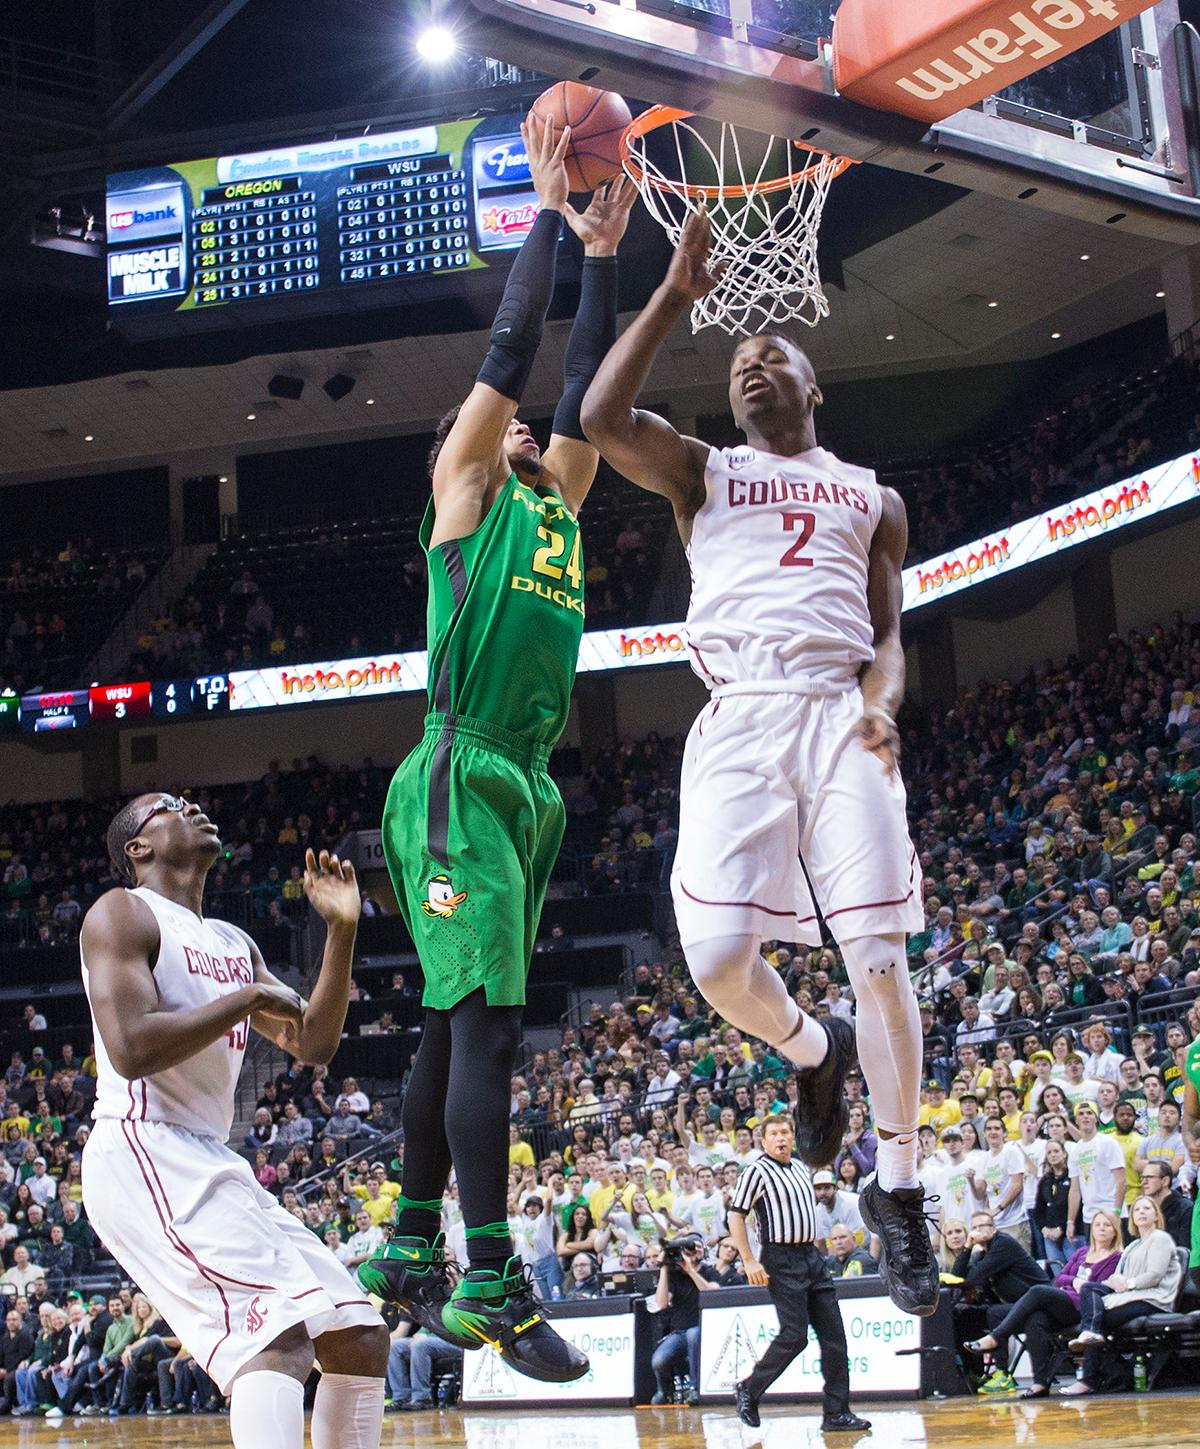 Oregon Ducks' Dillon Brooks (#24) attempts a basket against the Washington State Cougars. Brooks scored 17 points for Oregon. The Ducks beat the Cougars 76-62. Kianna Cabuco, Oregon News Lab